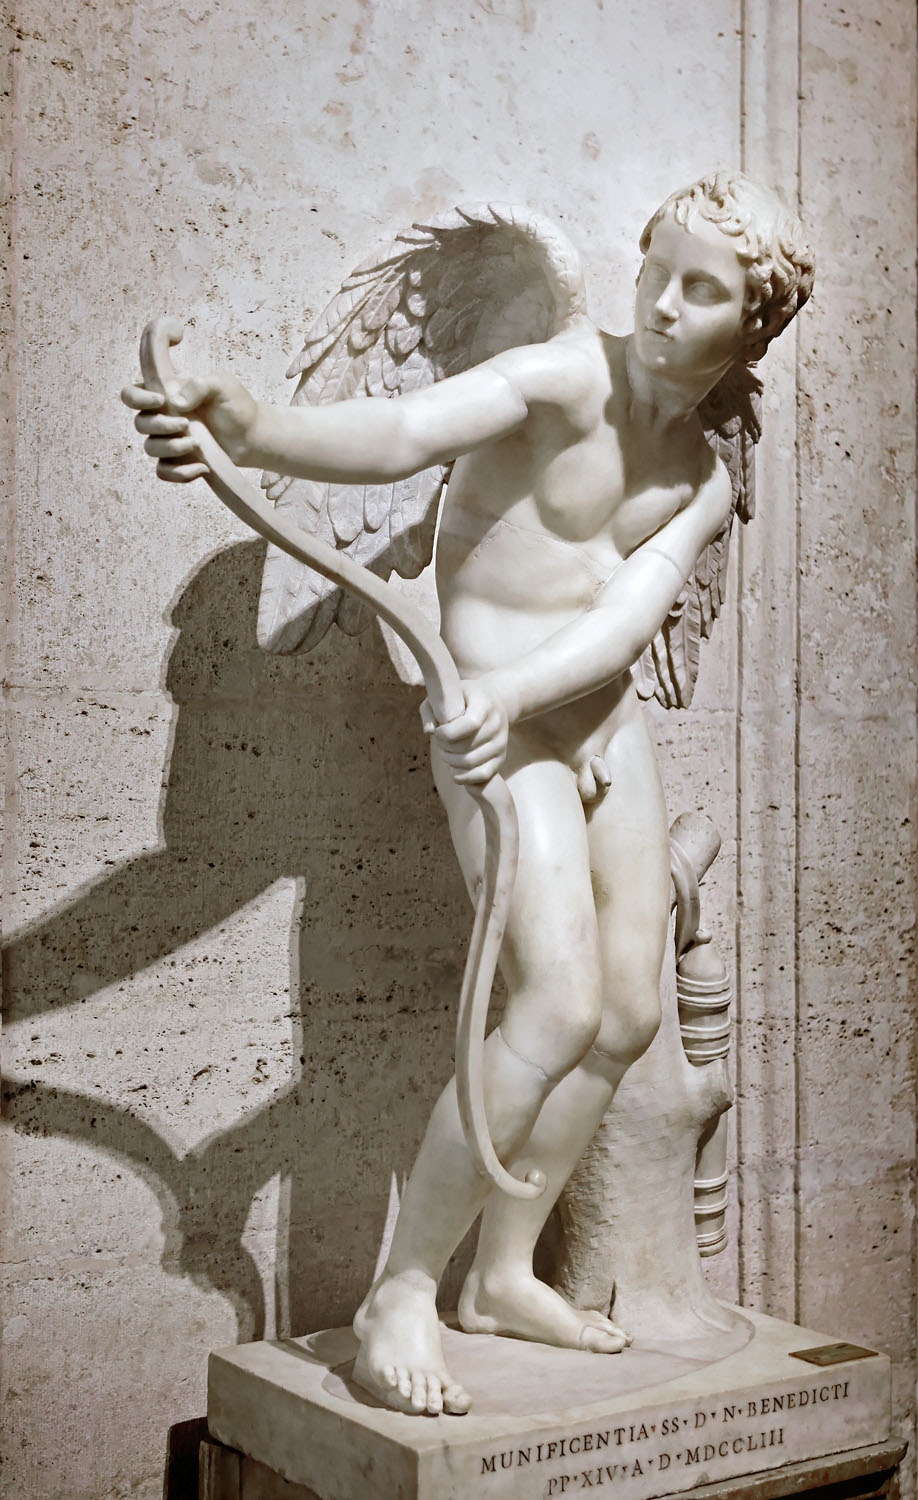 Eros stringing his bow, Musei Capitolini, Rome